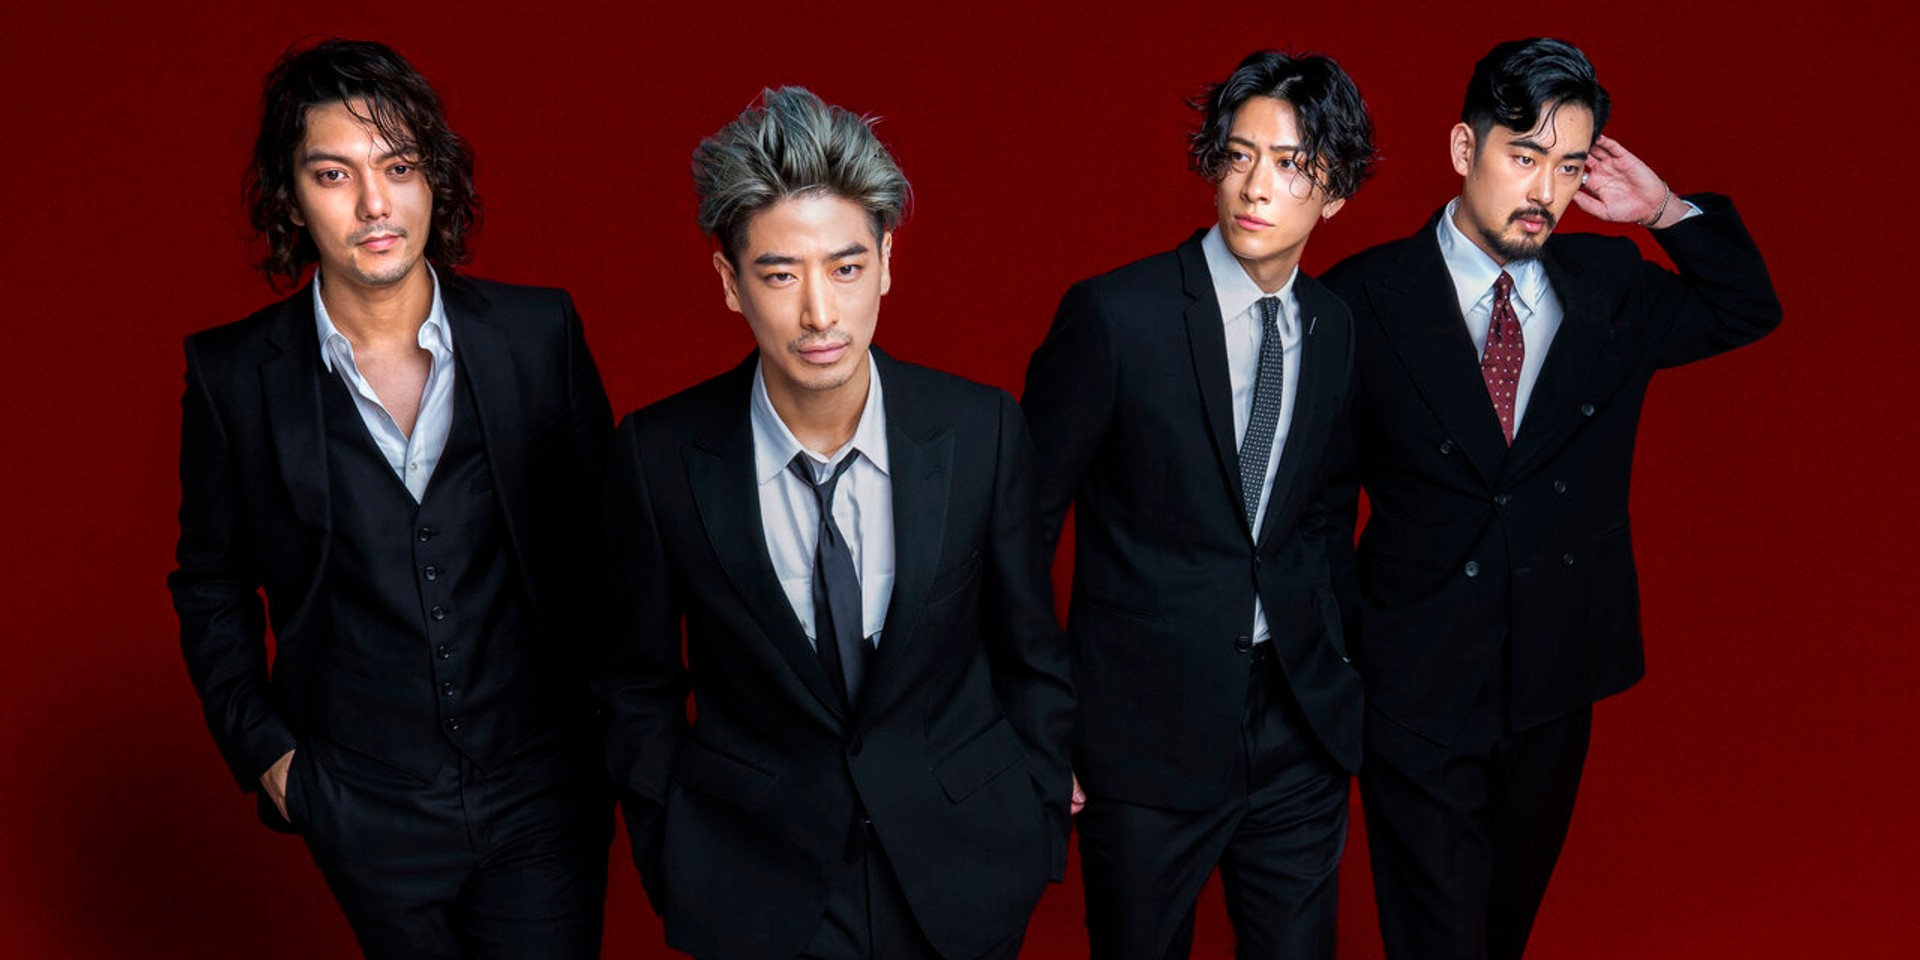 Asia Spotlight: Japan's I Don't Like Mondays. on their artistic growth and new musical direction